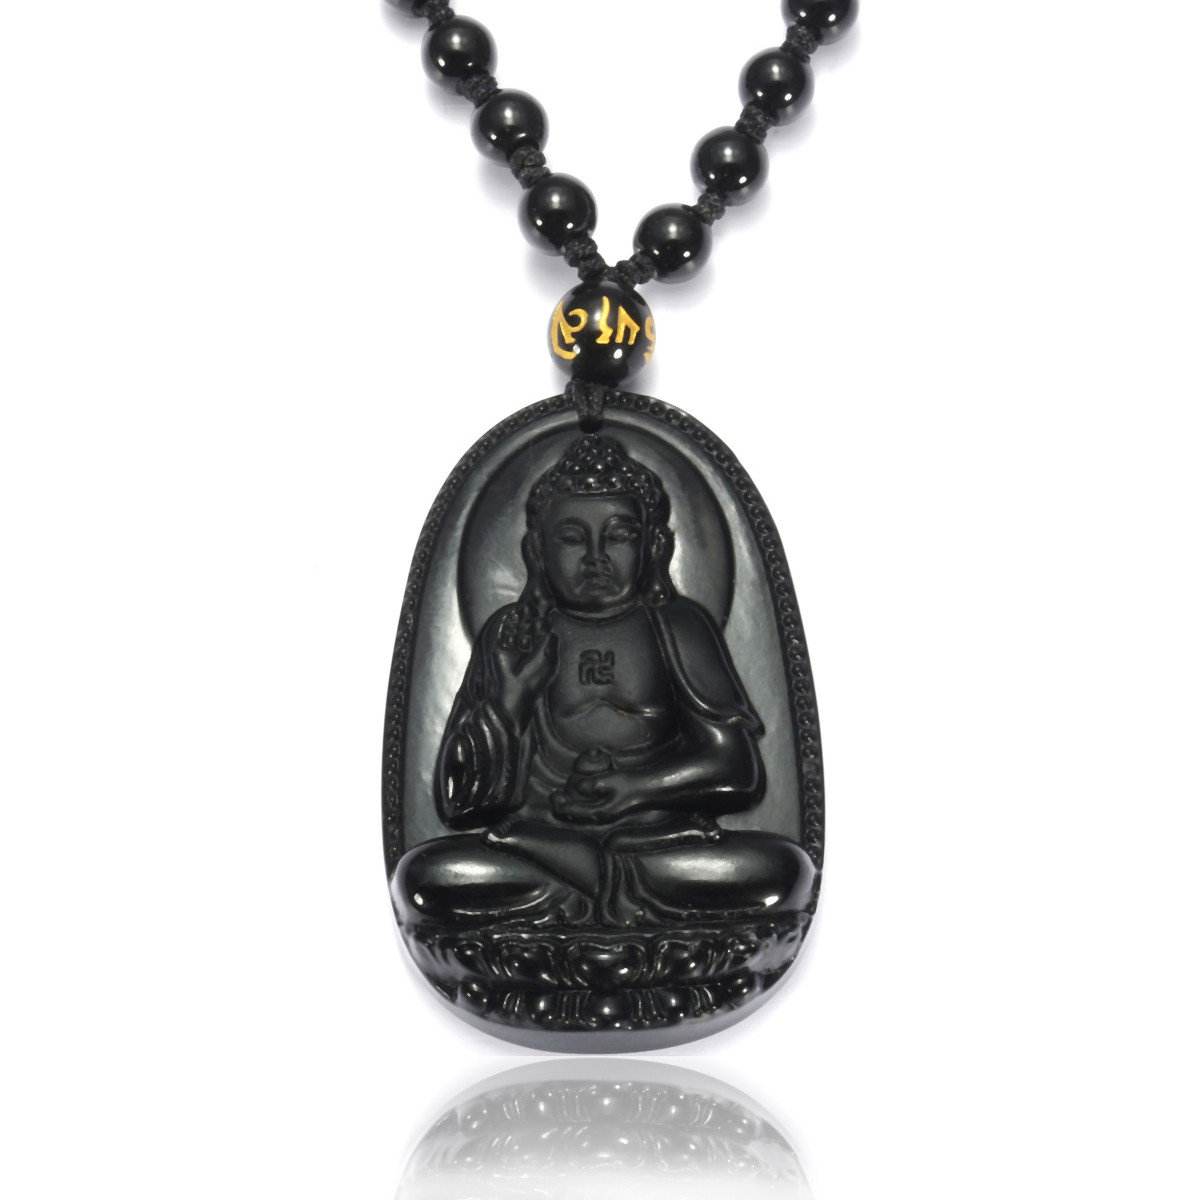 Vintage Buddha Necklace Black Obsidian Buddha Raise Hands Necklace